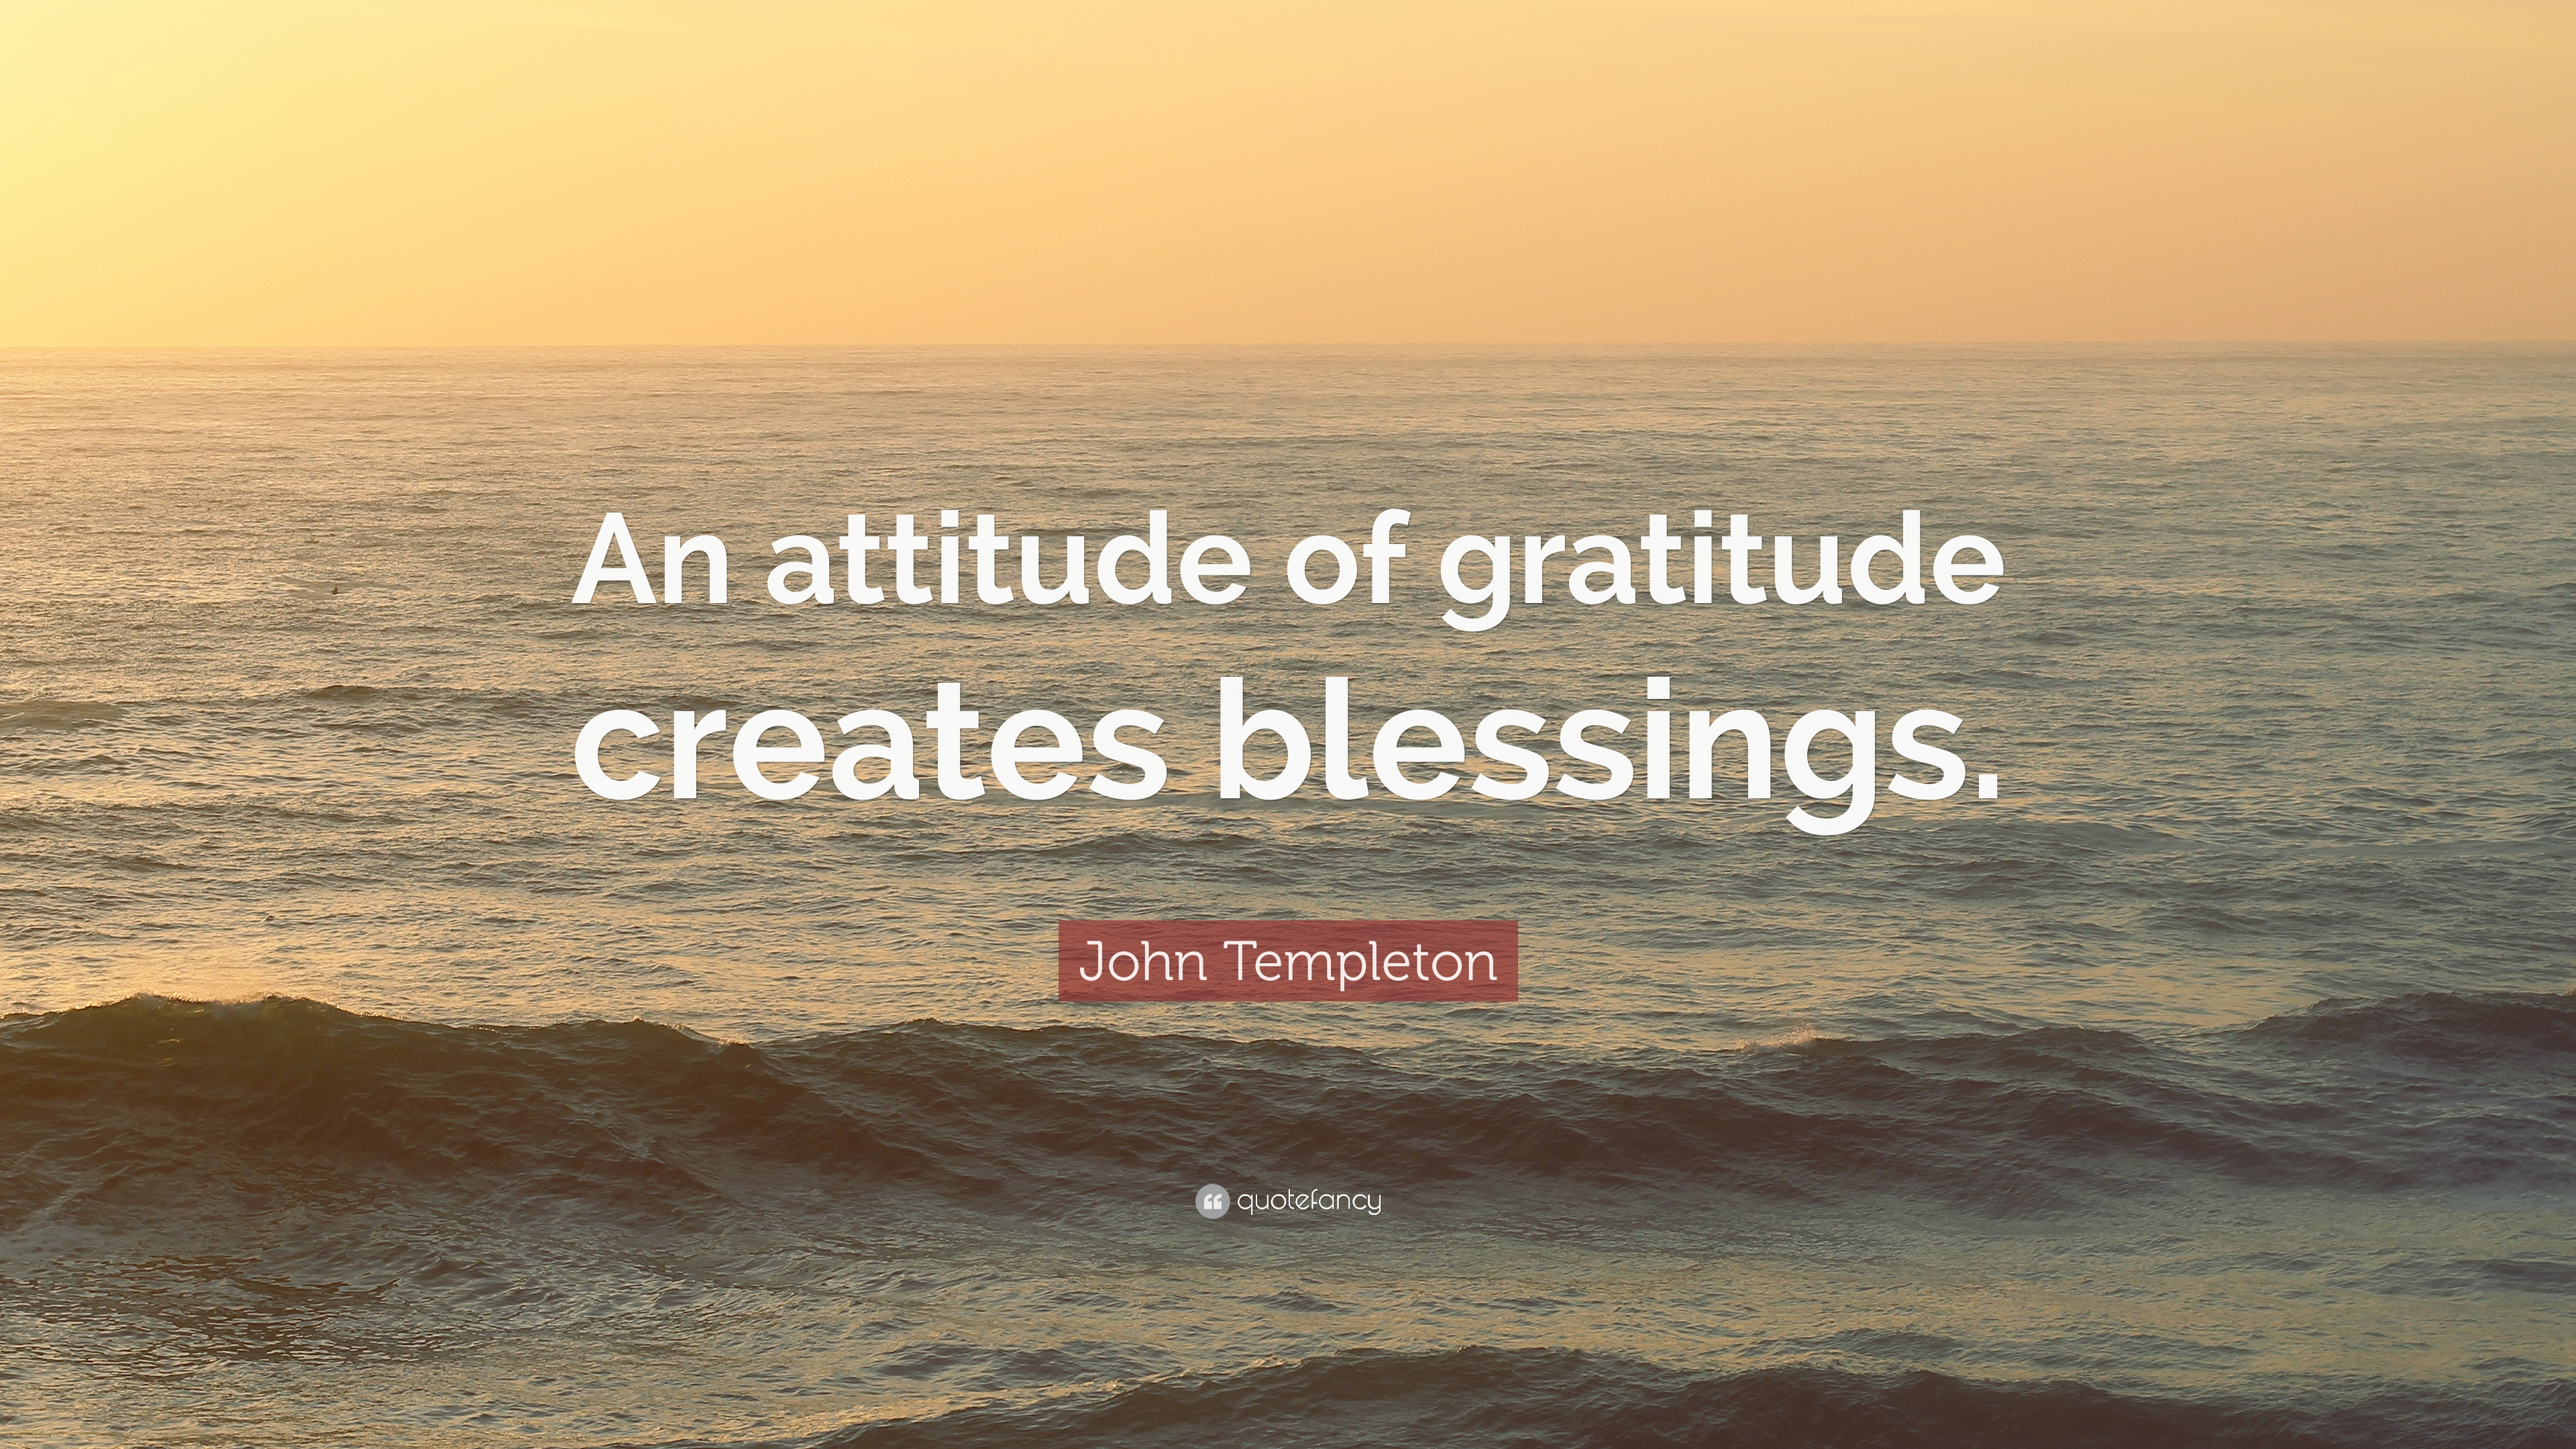 John Templeton Quote An Attitude Of Gratitude Creates Blessings 12 Wallpapers Quotefancy